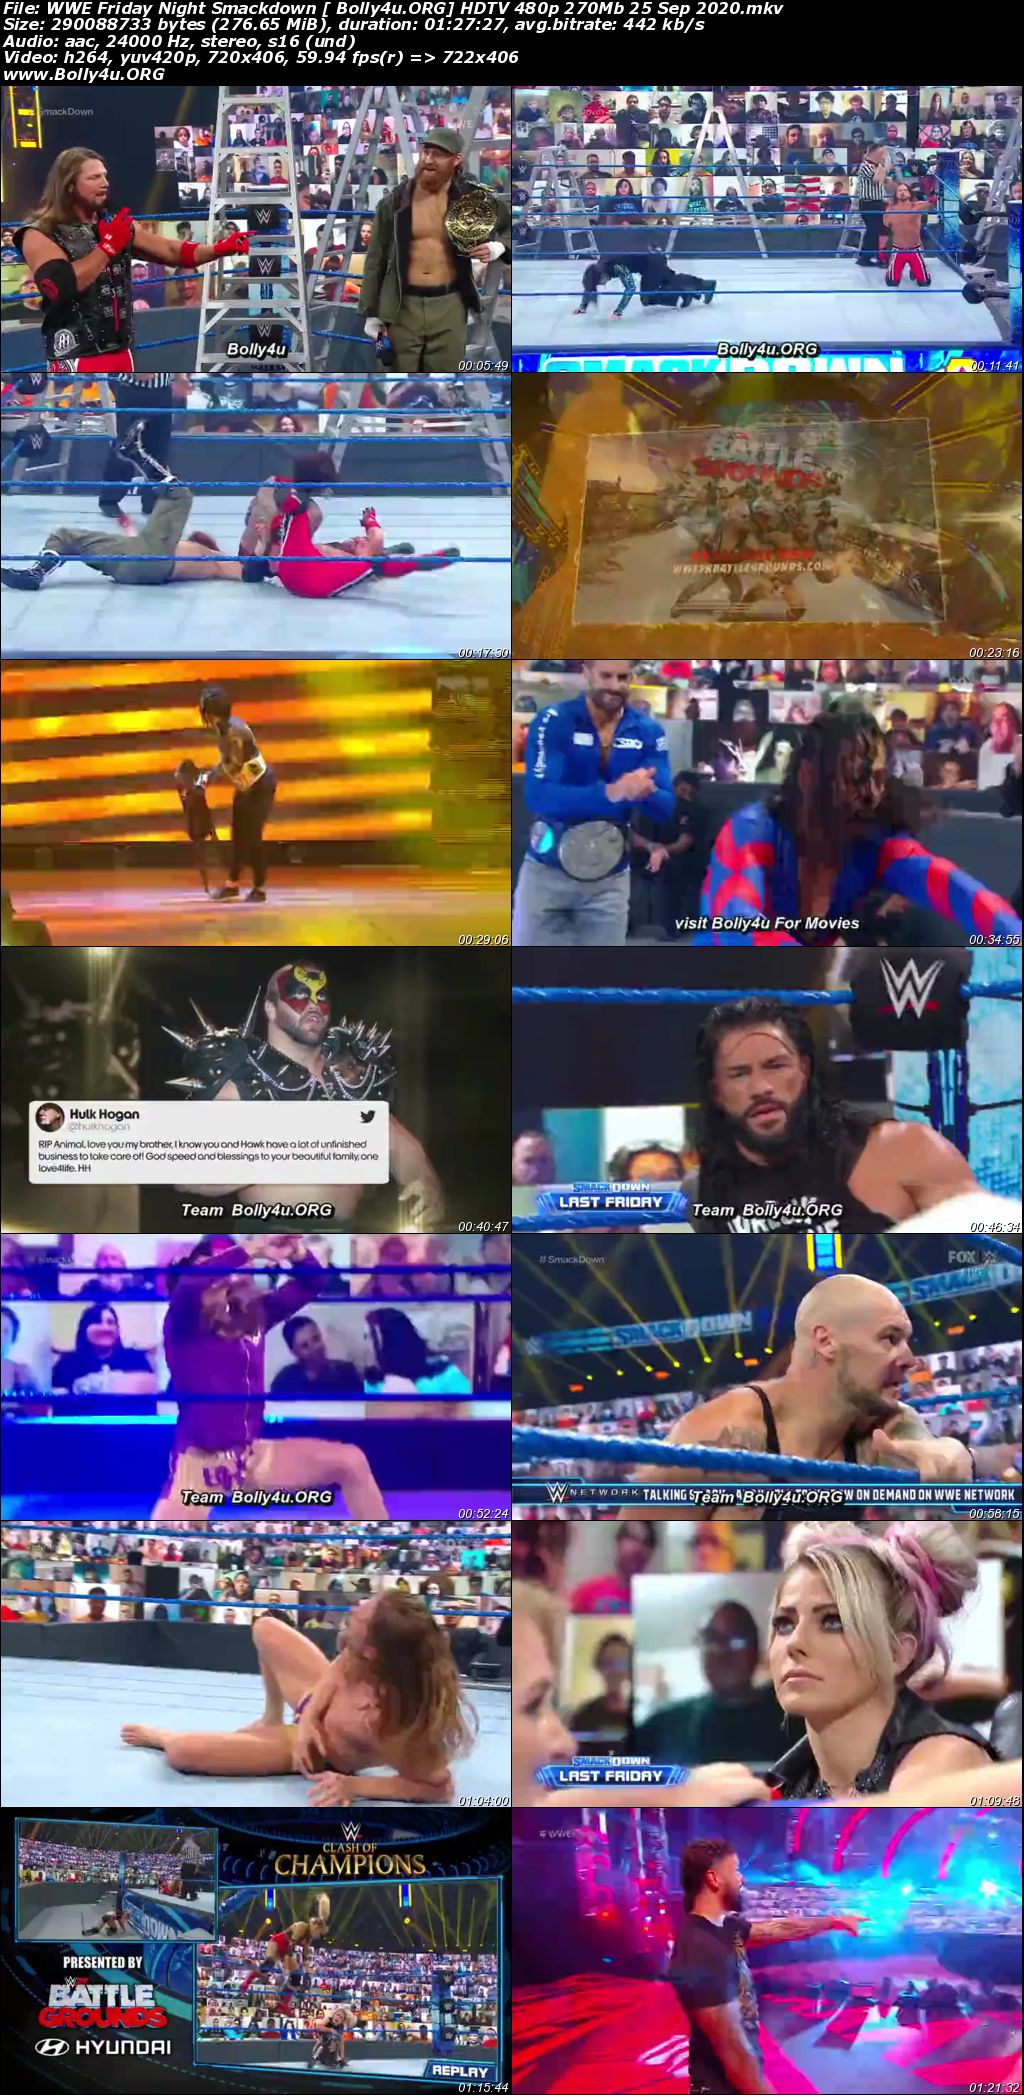 WWE Friday Night Smackdown HDTV 480p 270Mb 25 Sep 2020 Download